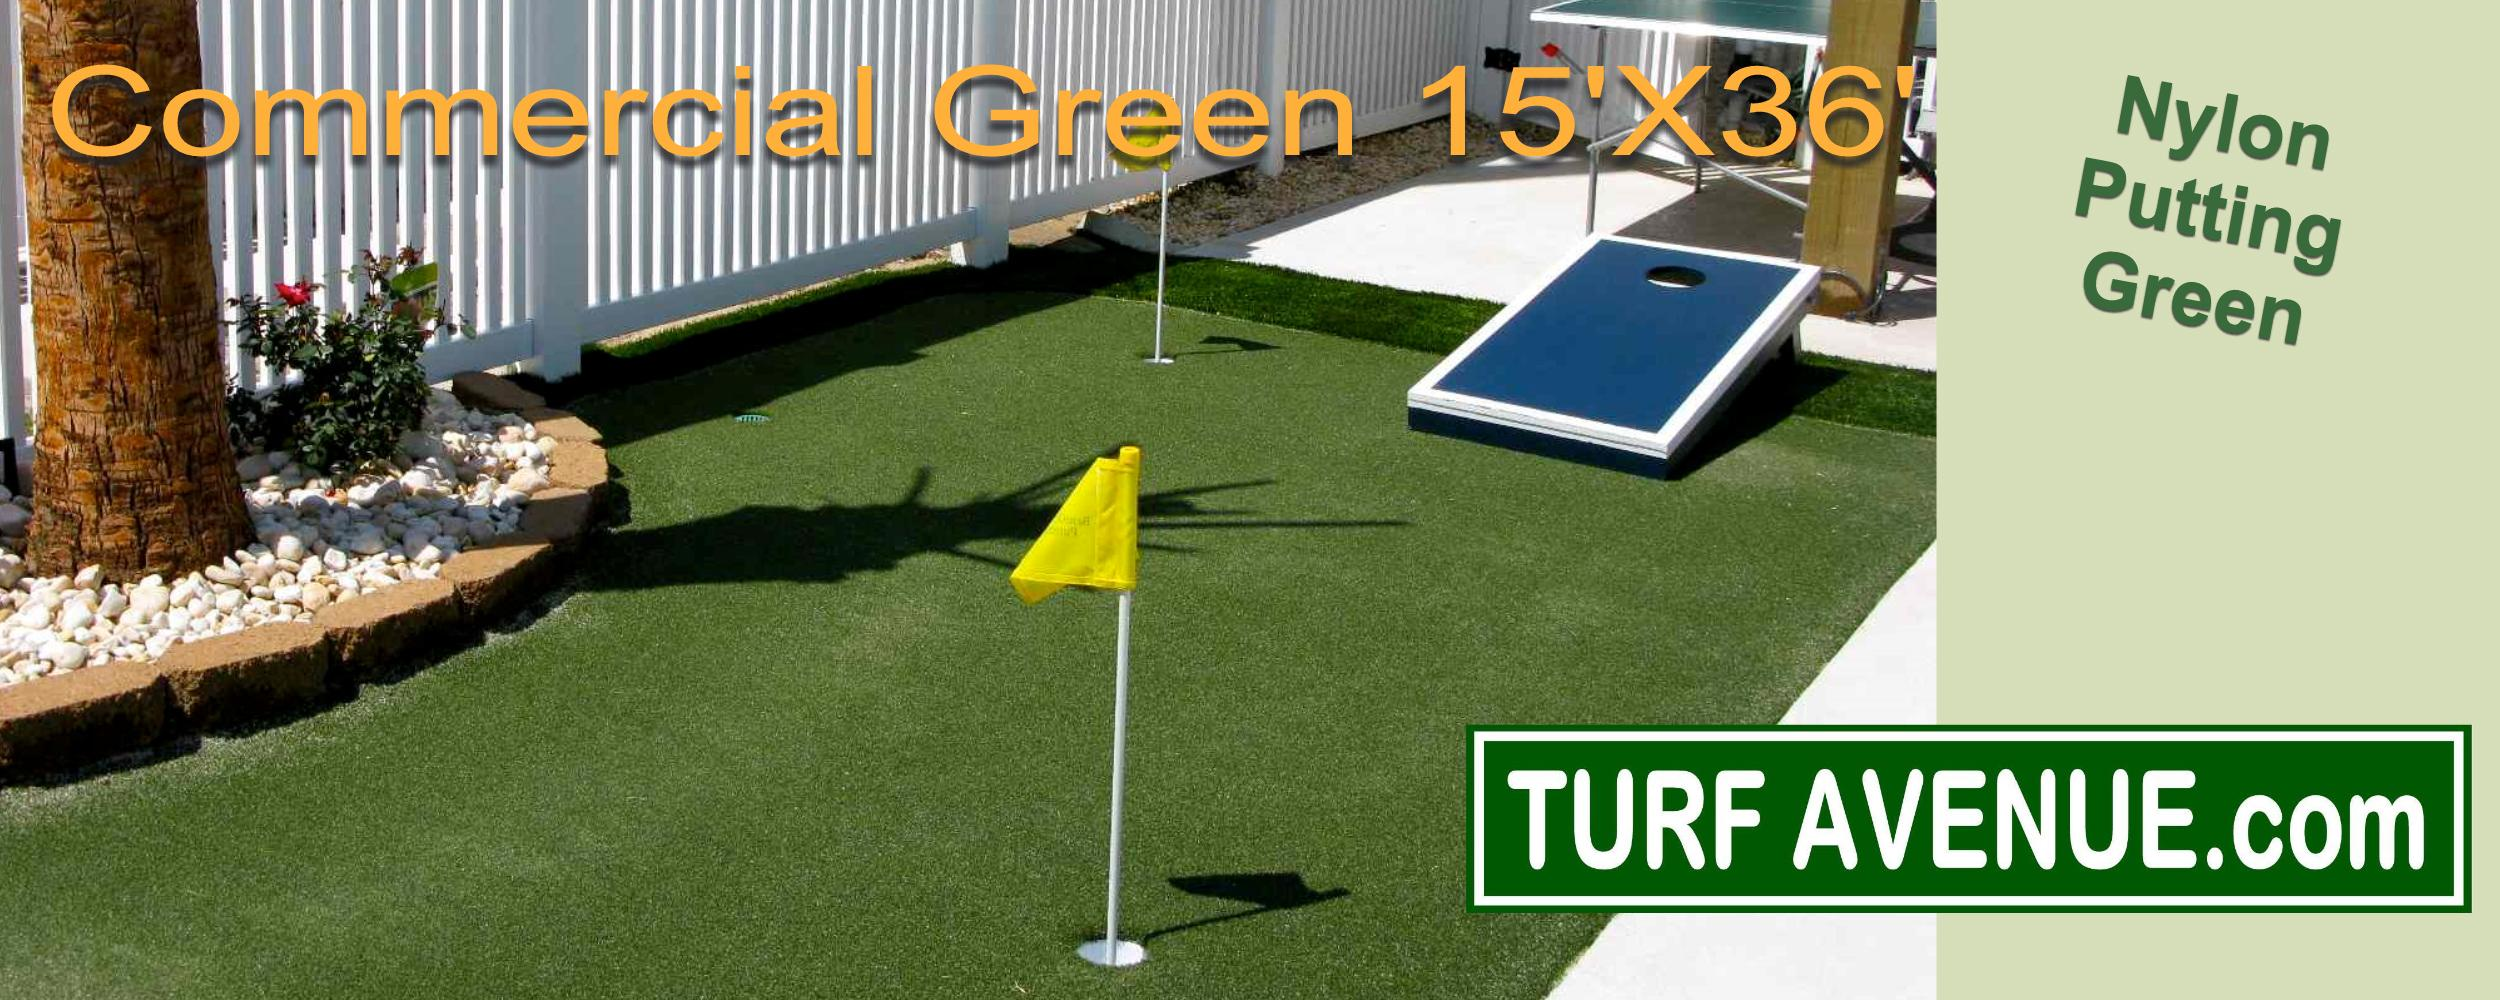 Synthetic turf putting greens